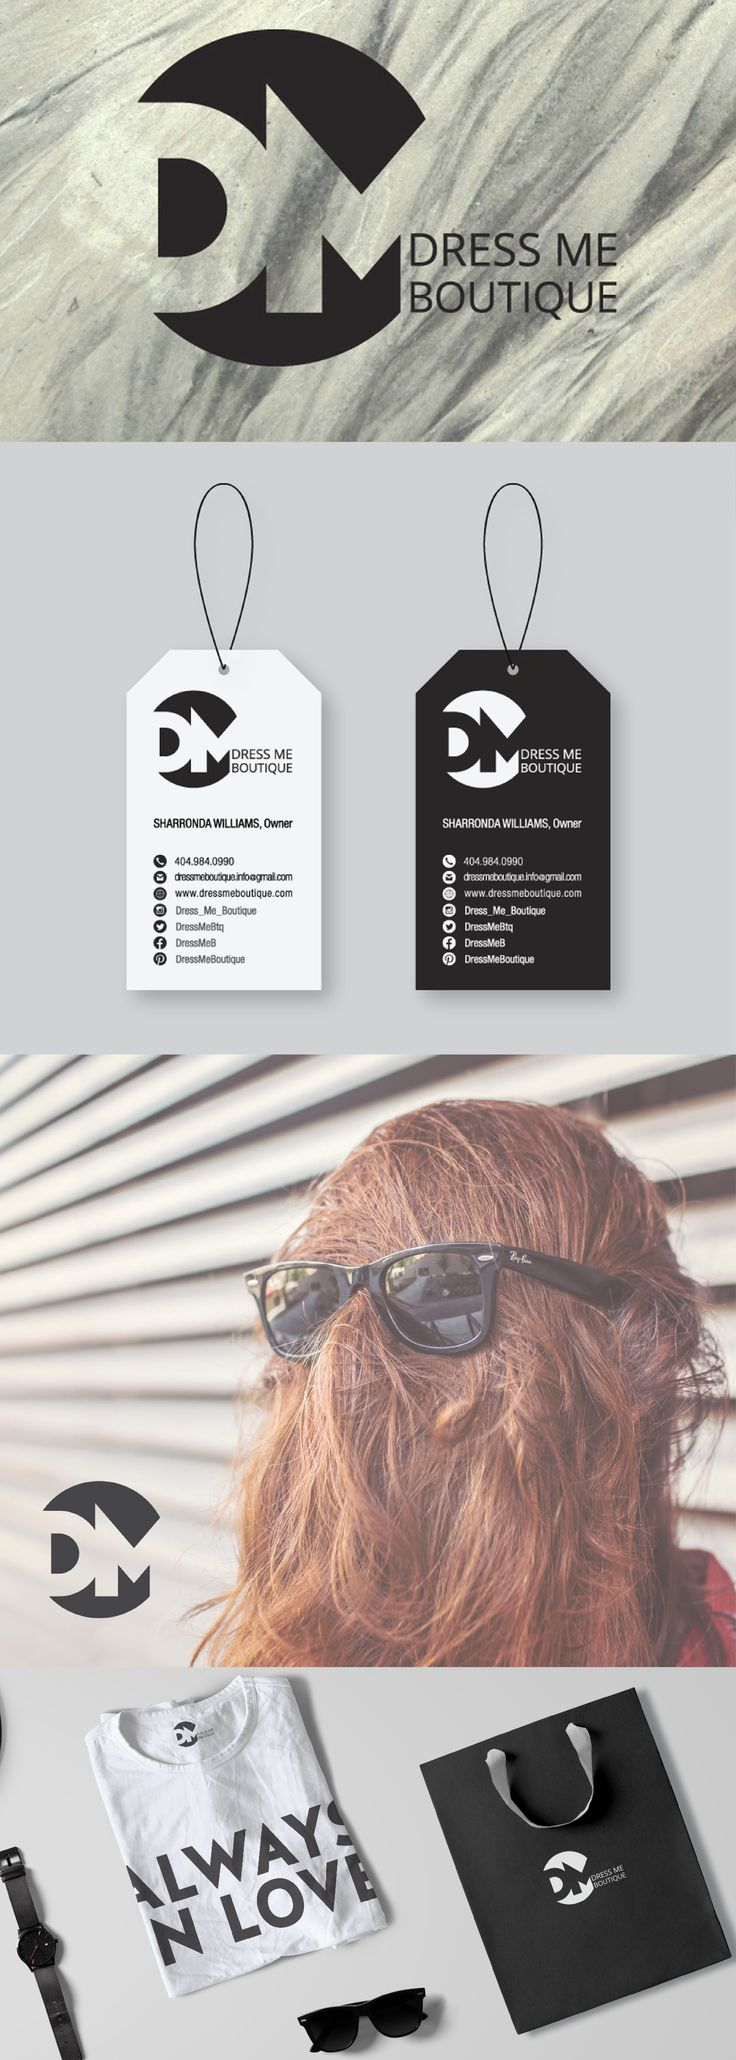 Best 25 online fashion stores ideas on pinterest minimalist clean and bold logo design and branding system for an online fashion store the unique business cards remind stylish price tags lets panda for dress me magicingreecefo Choice Image